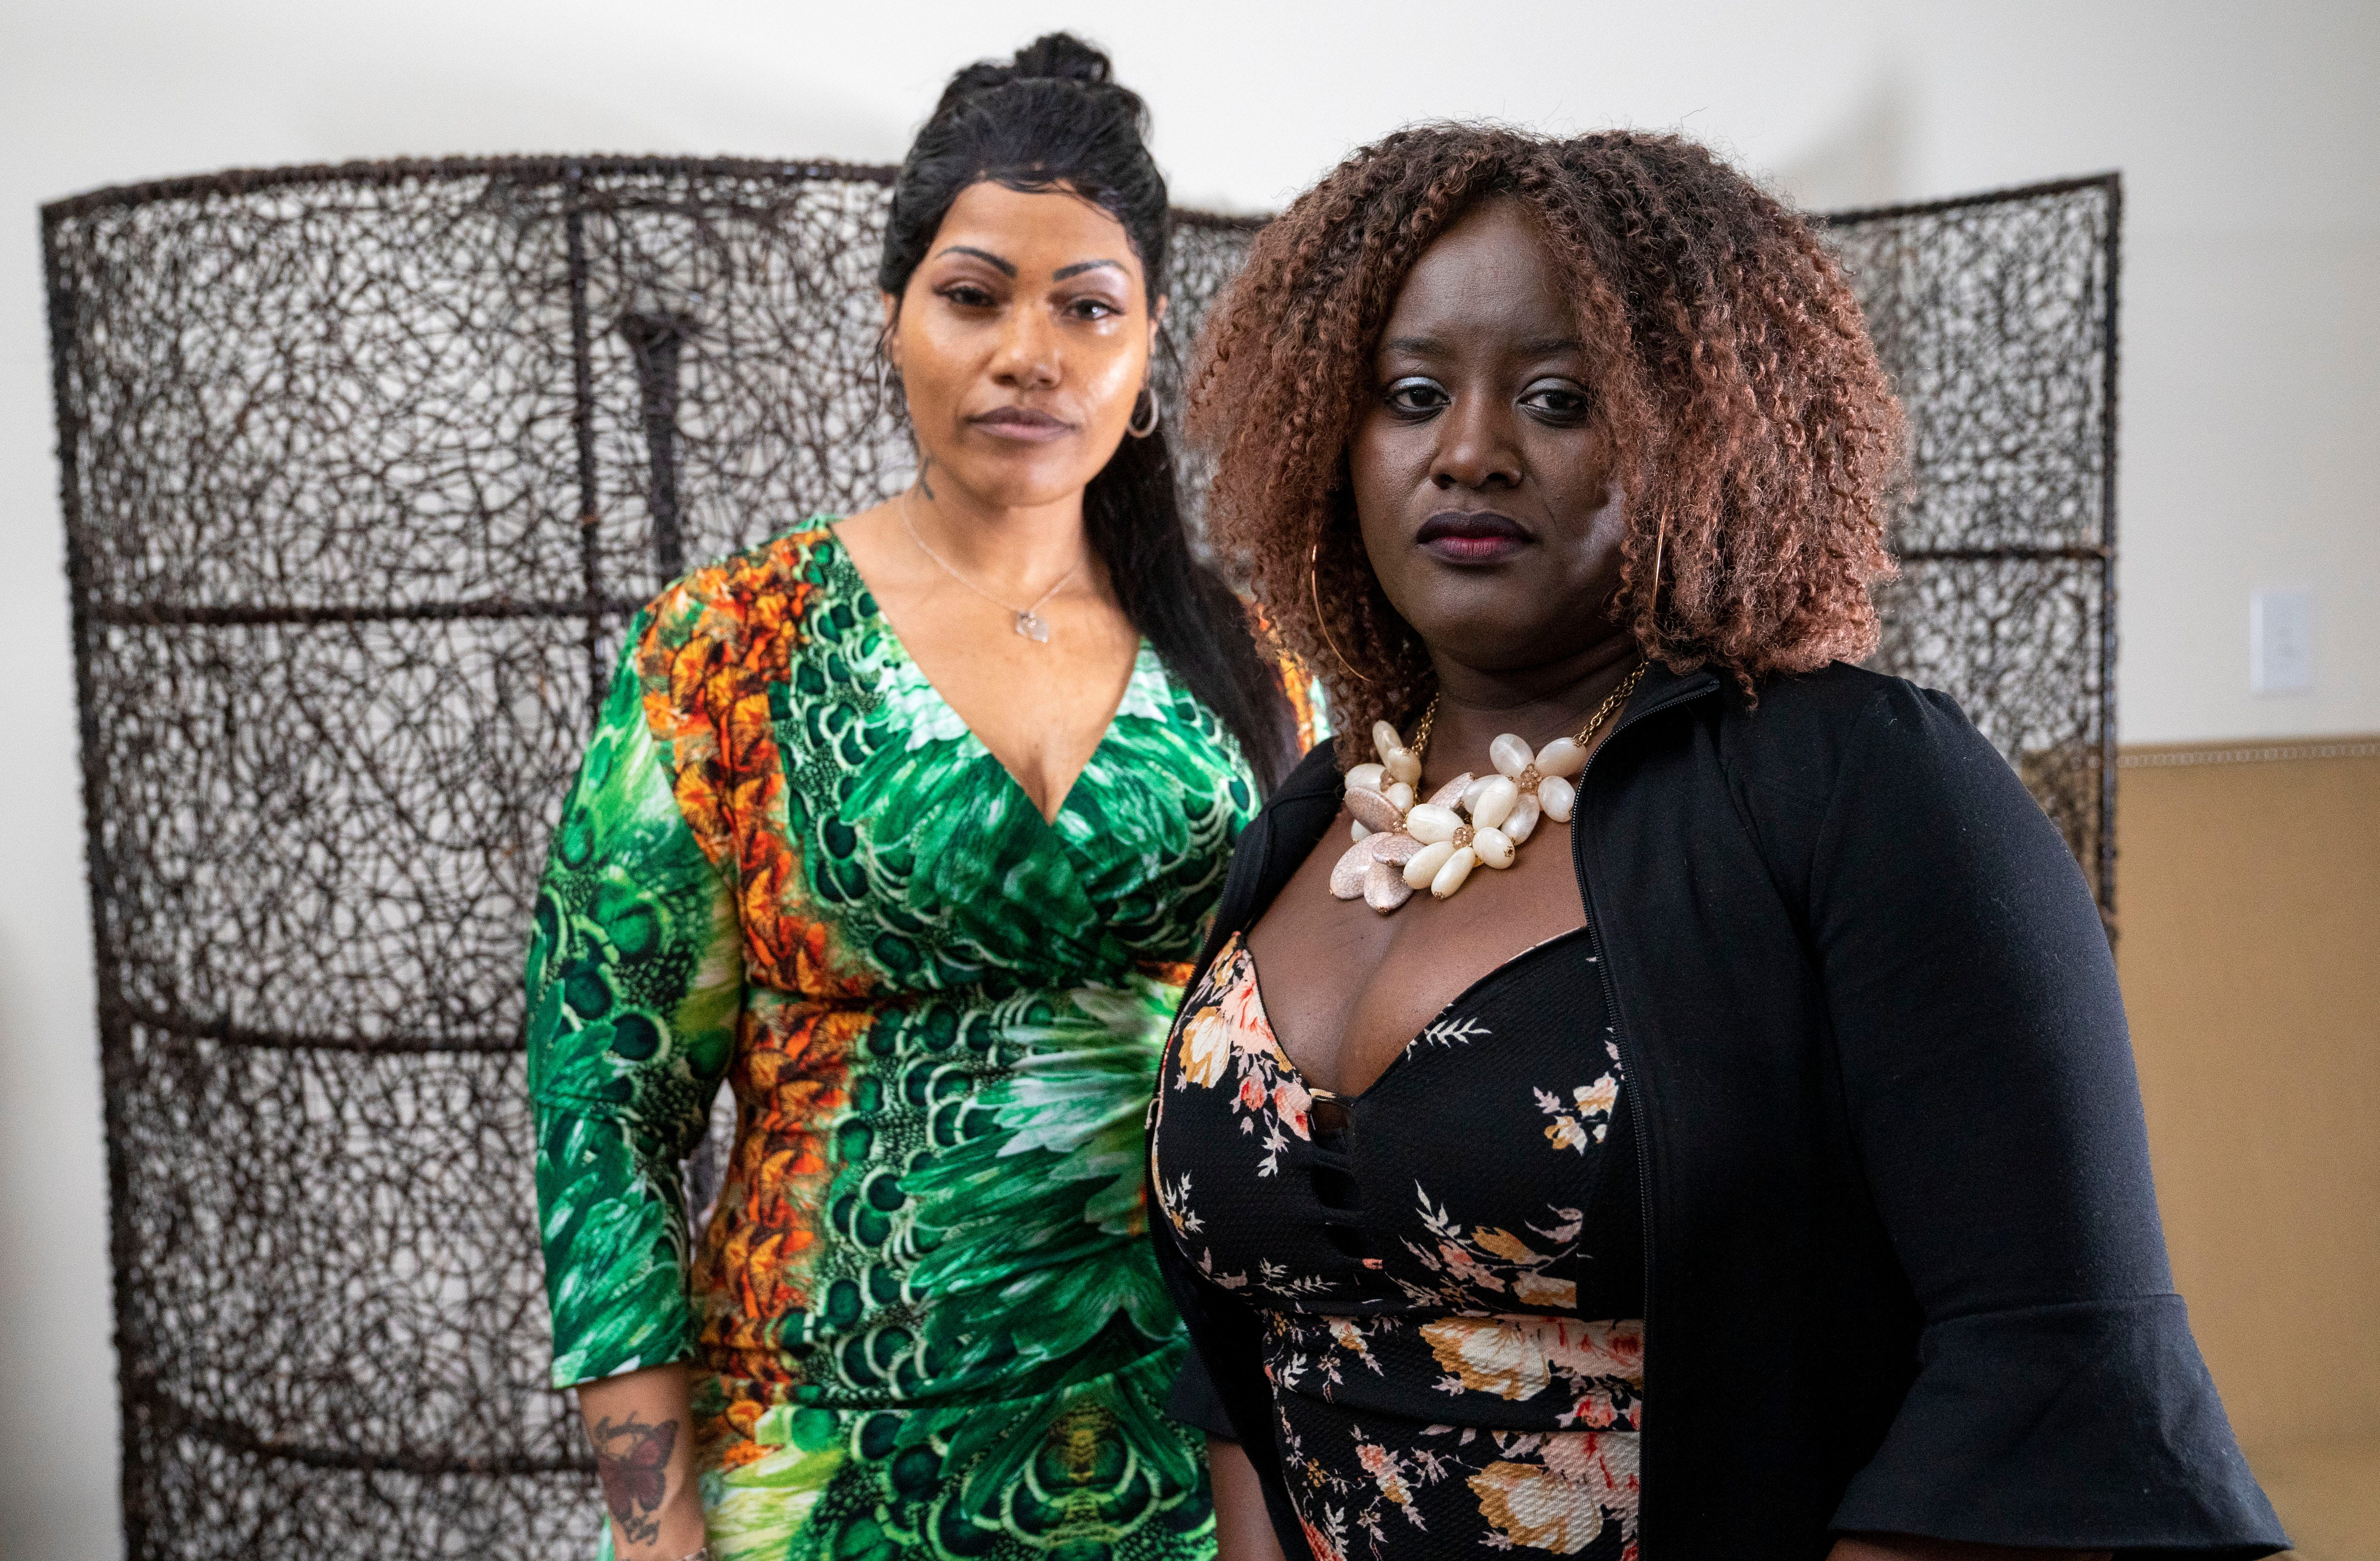 Porche Campbell, left, and Nicola Mason both were left badly scarred after surgeries at Spectrum Aesthetics.